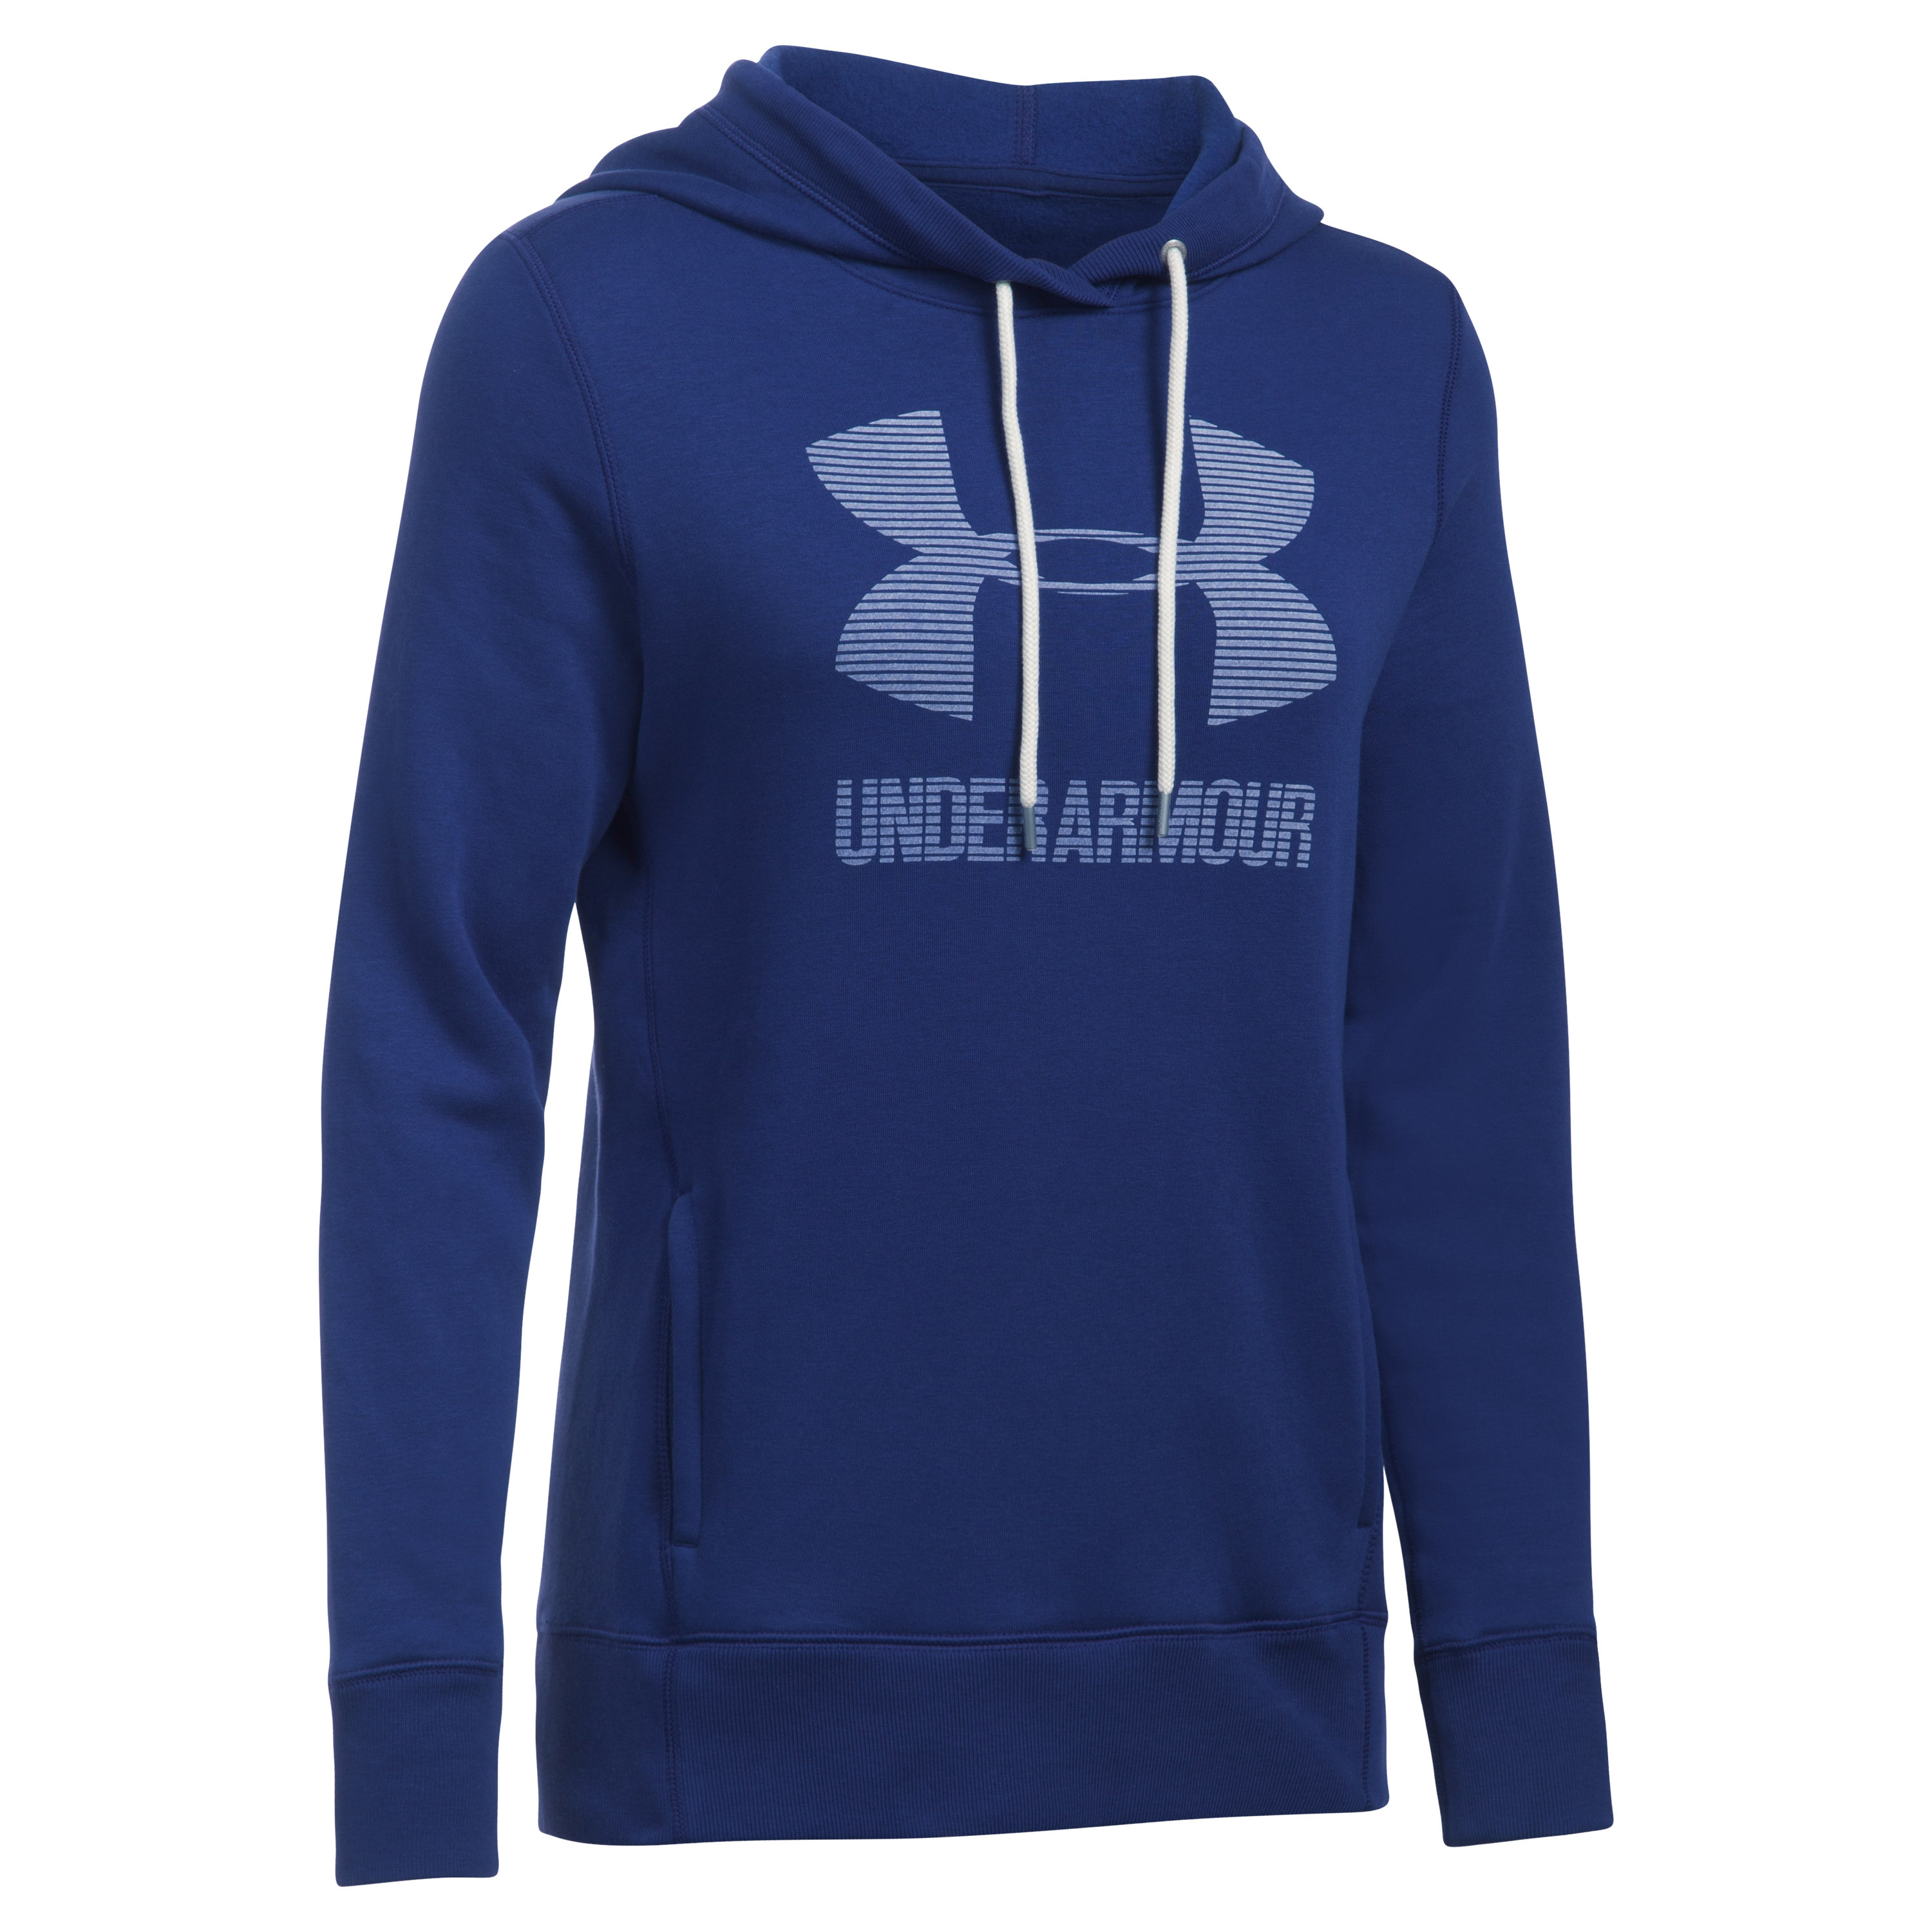 Under Armour Fitness Woman's Hoodie purple